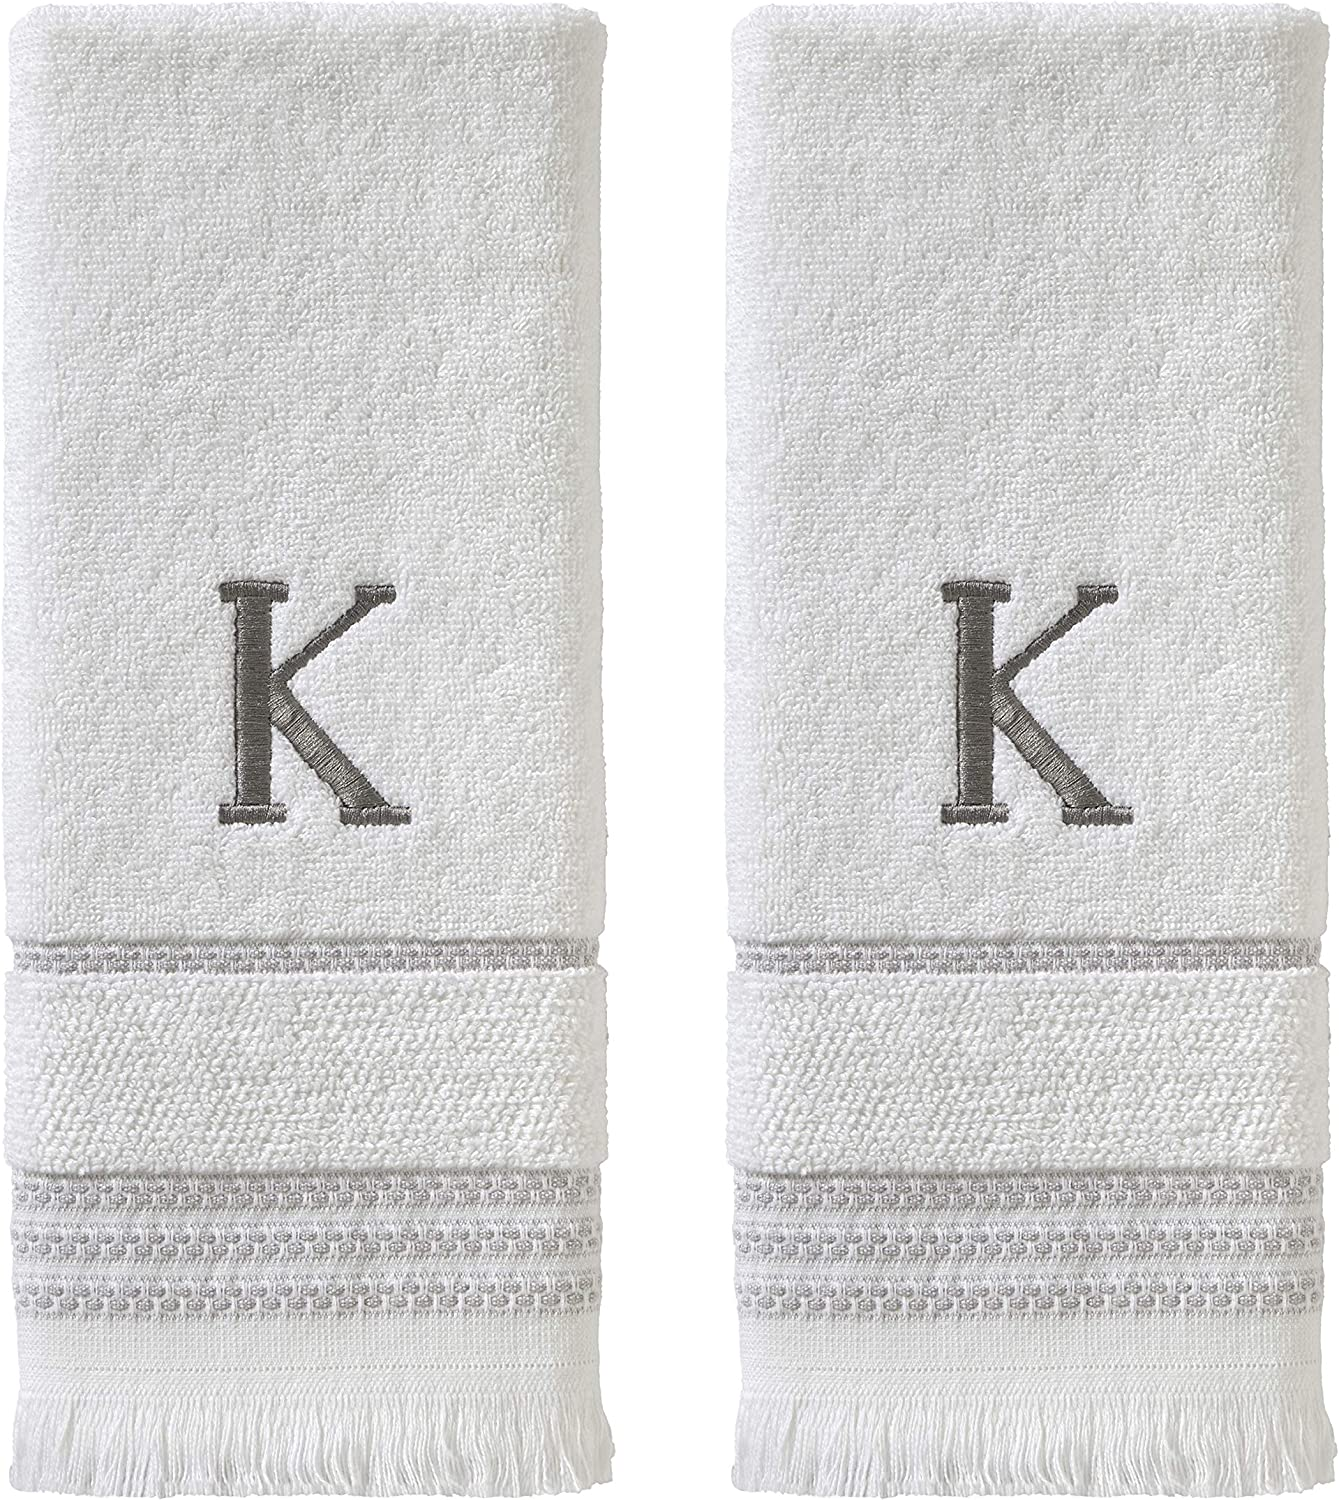 SKL HOME by Saturday Knight Ltd. Casual Monogram Hand Towel Set, K, 16x26, White 2 Pack